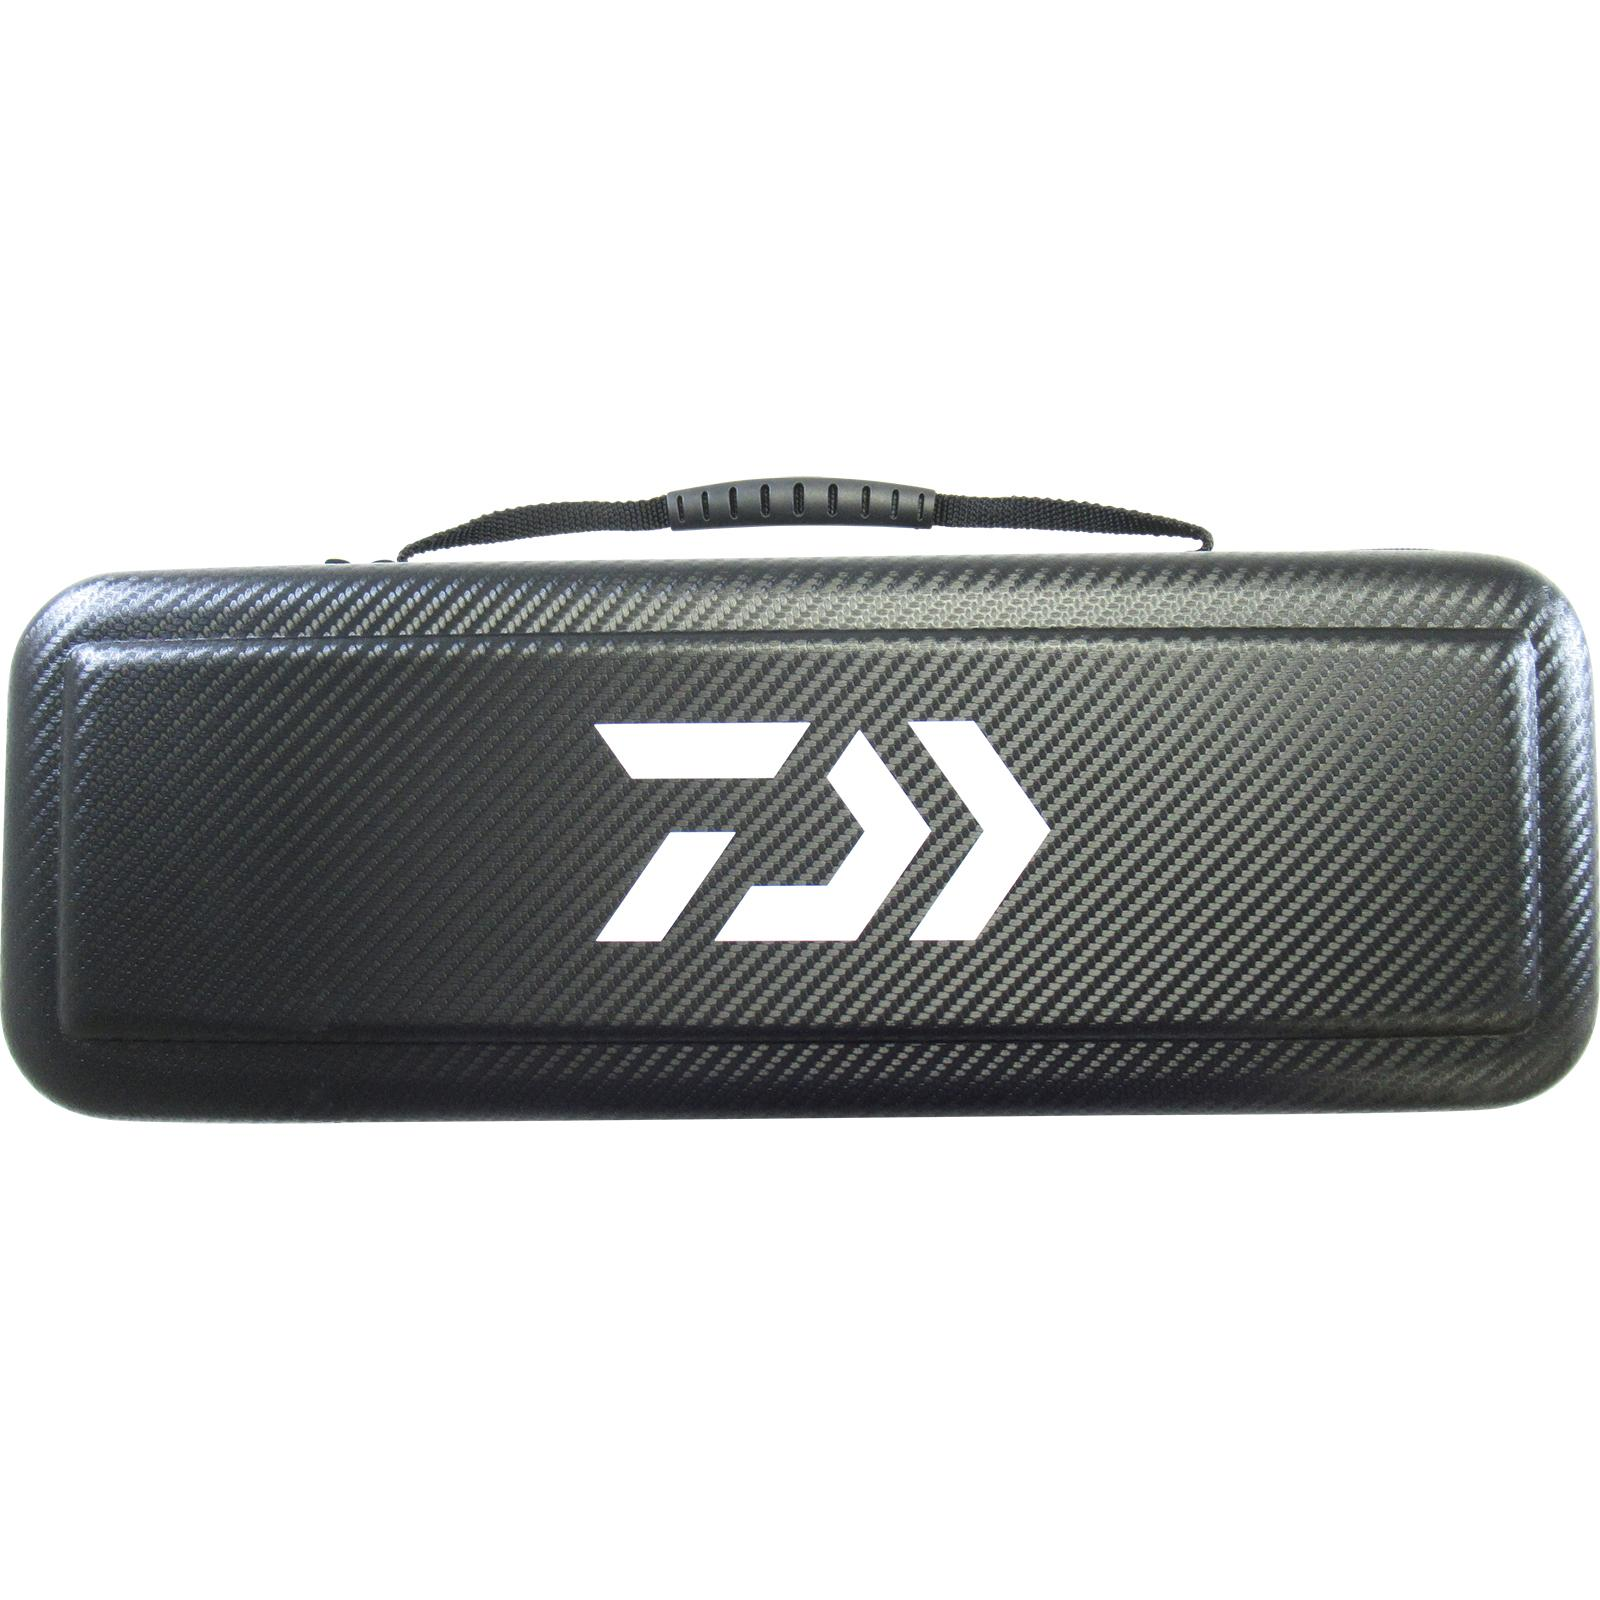 Daiwa Carbon Case Executive Pack Travel Spinning Combo Case